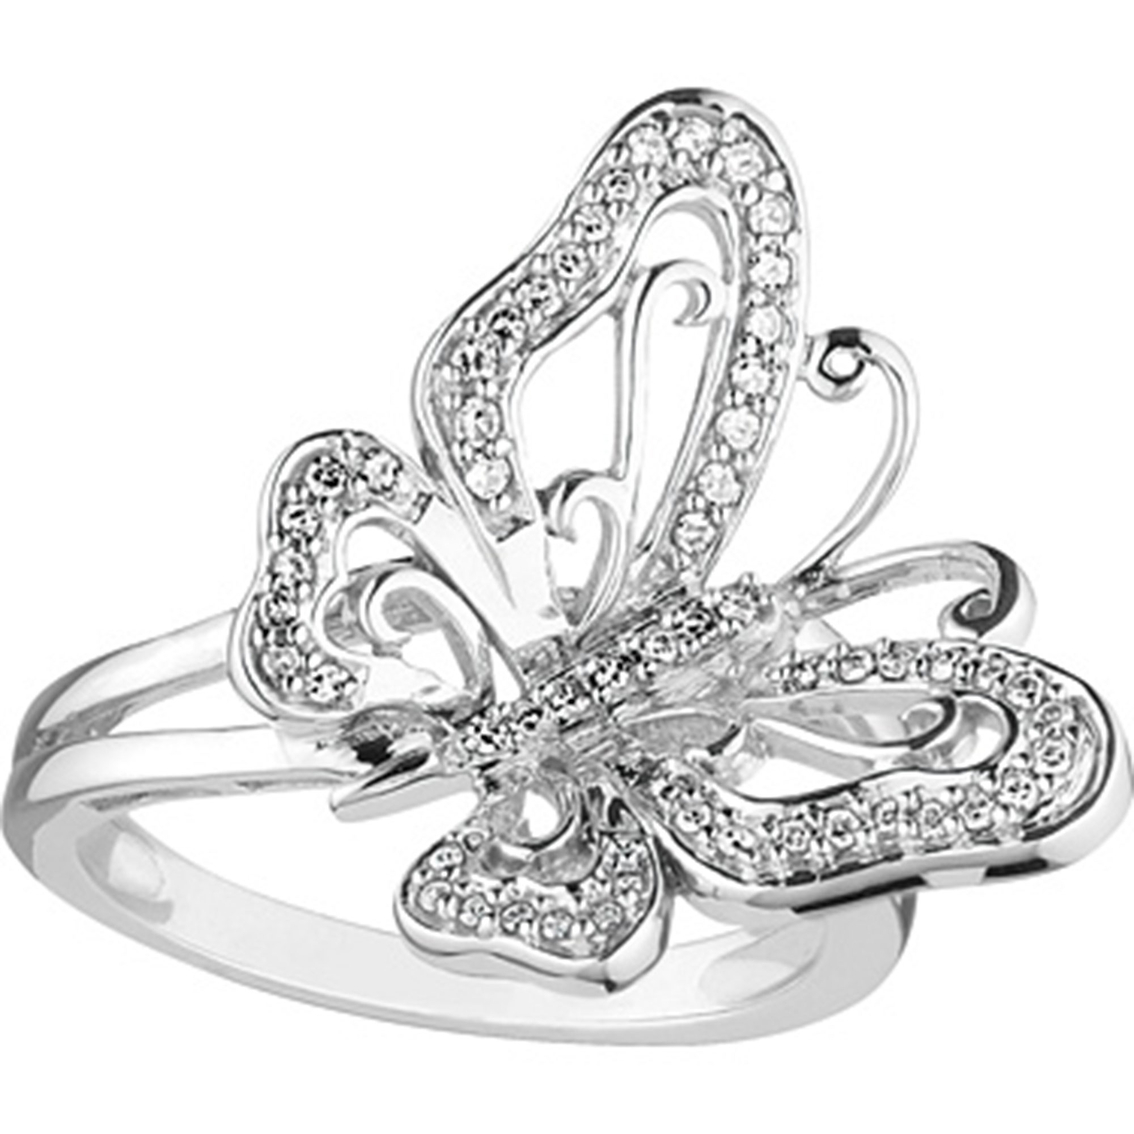 7819a8a7c Sterling Silver 1/5 Ctw Diamond Butterfly Ring, Size 7   Diamond ...